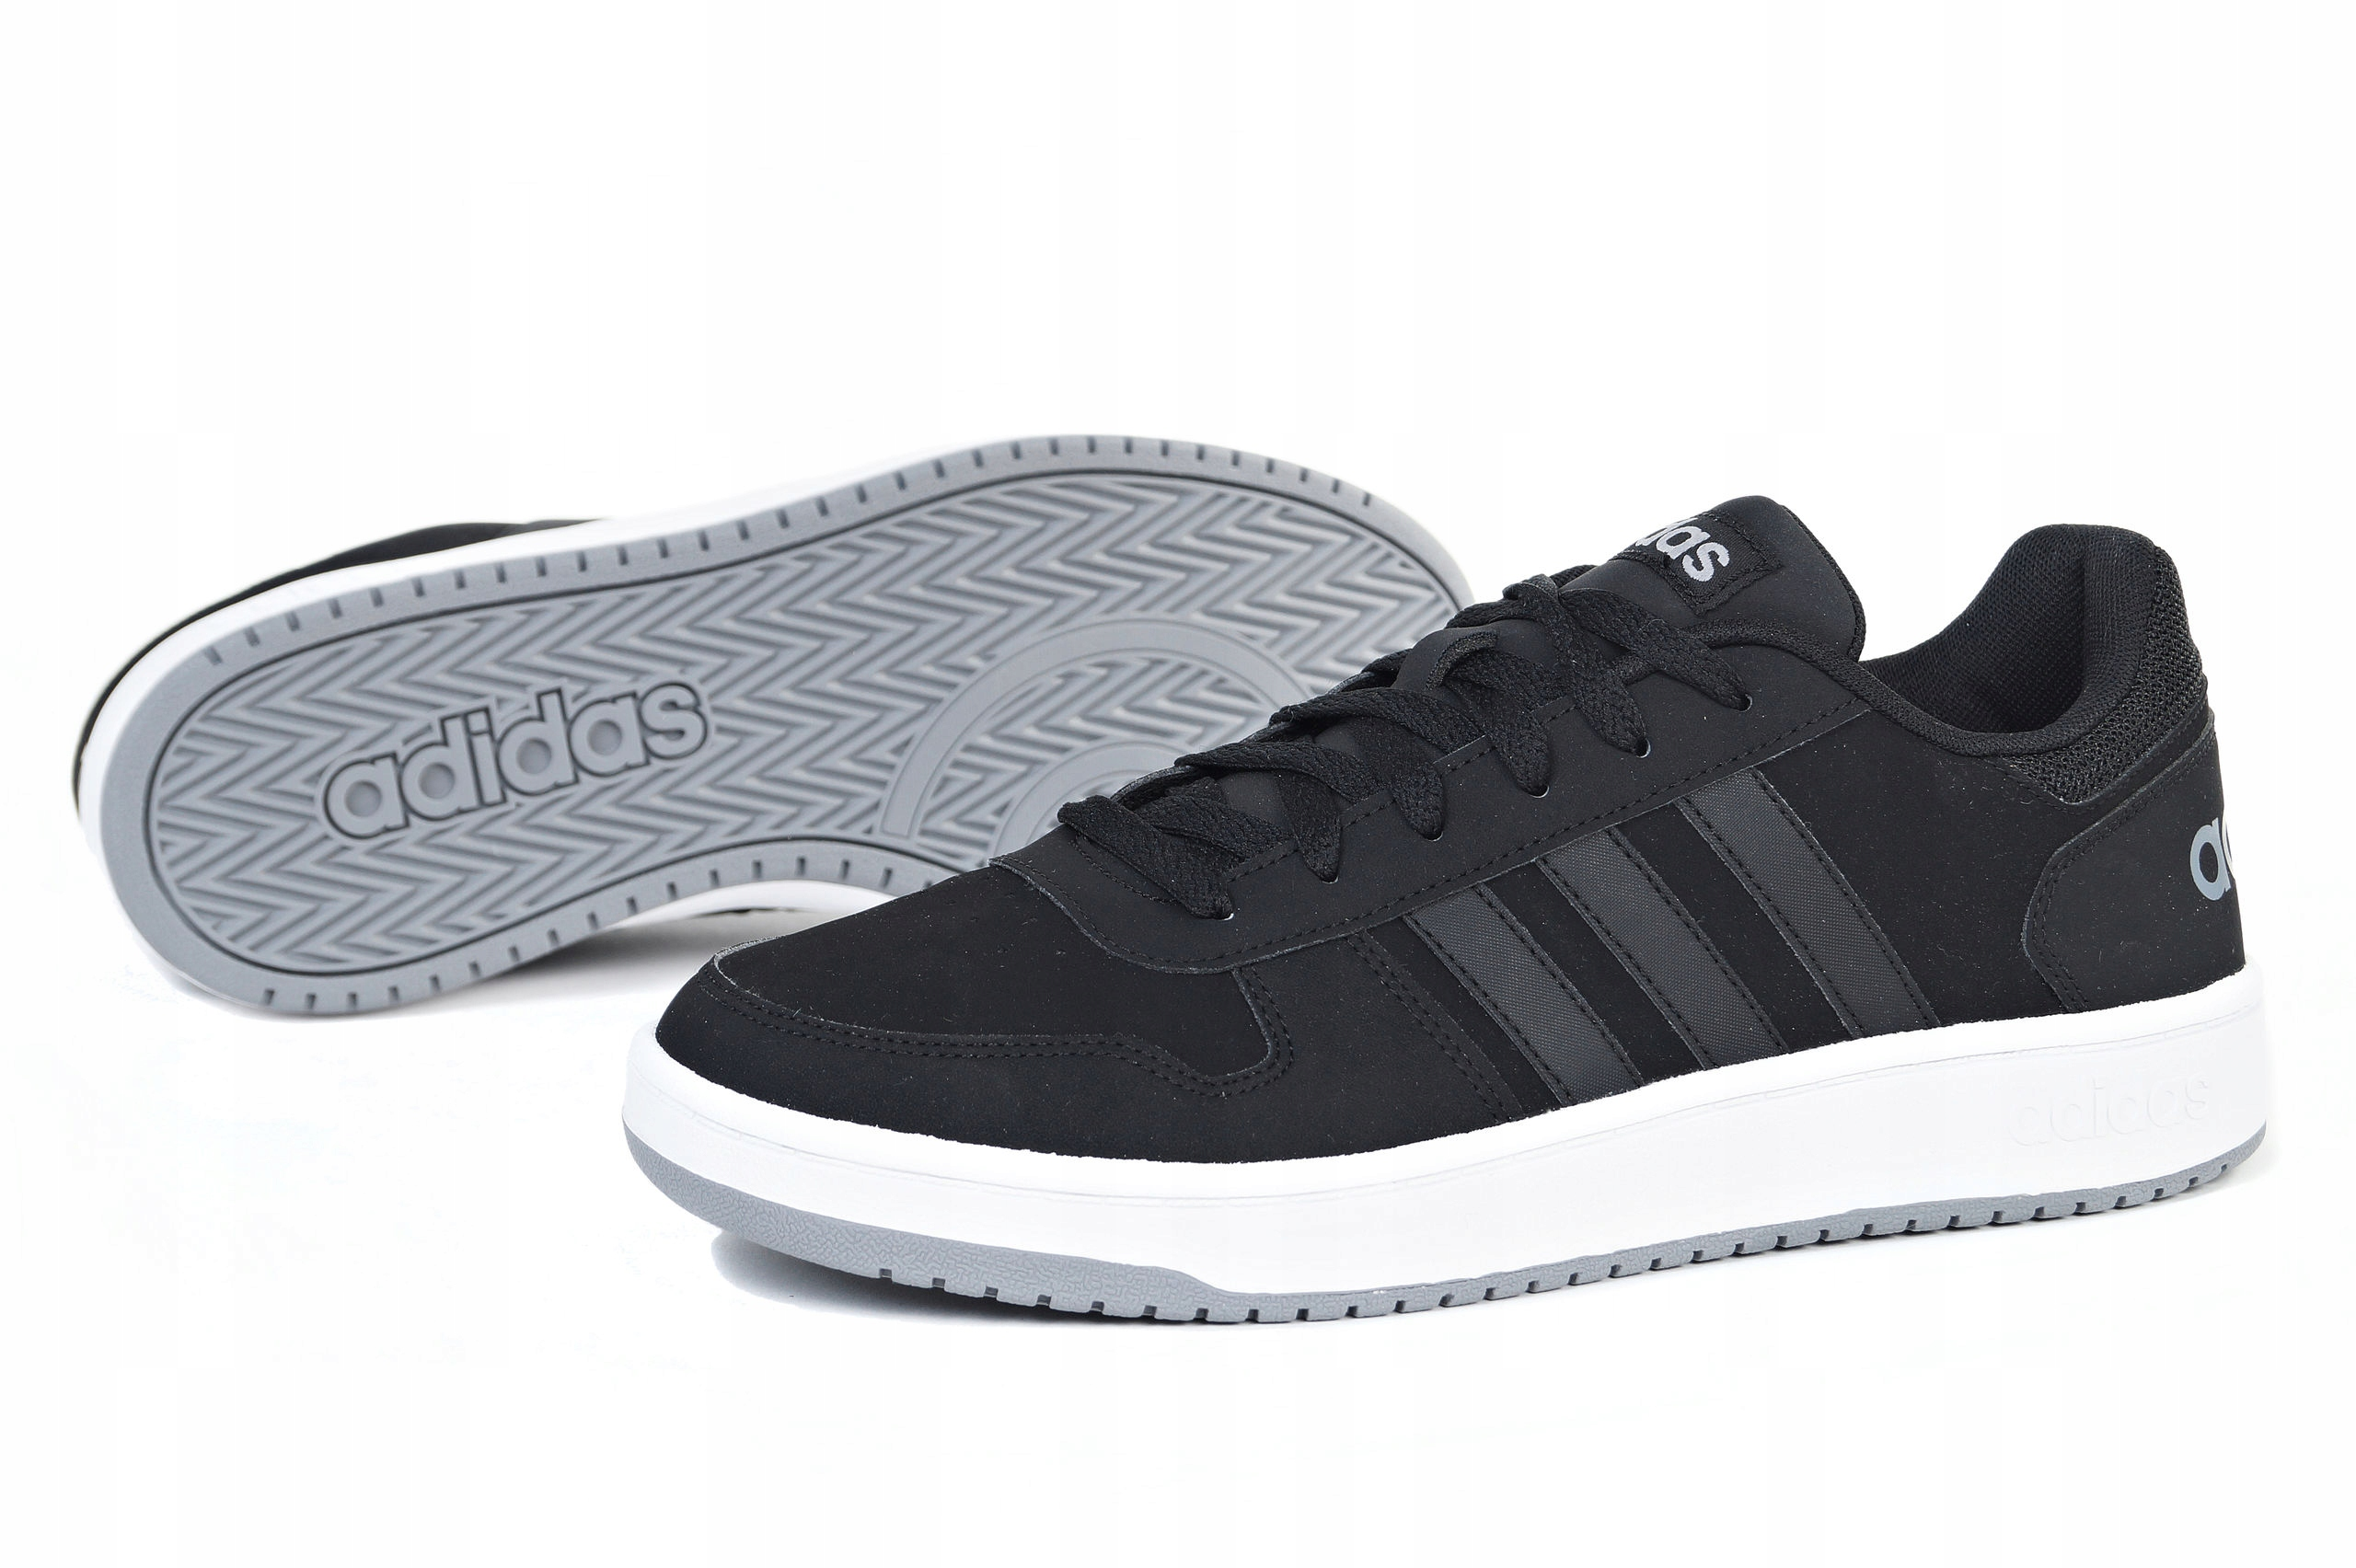 the best attitude 05f72 49867 BUTY ADIDAS MĘSKIE HOOPS 2.0 DB0122 R. 43 13